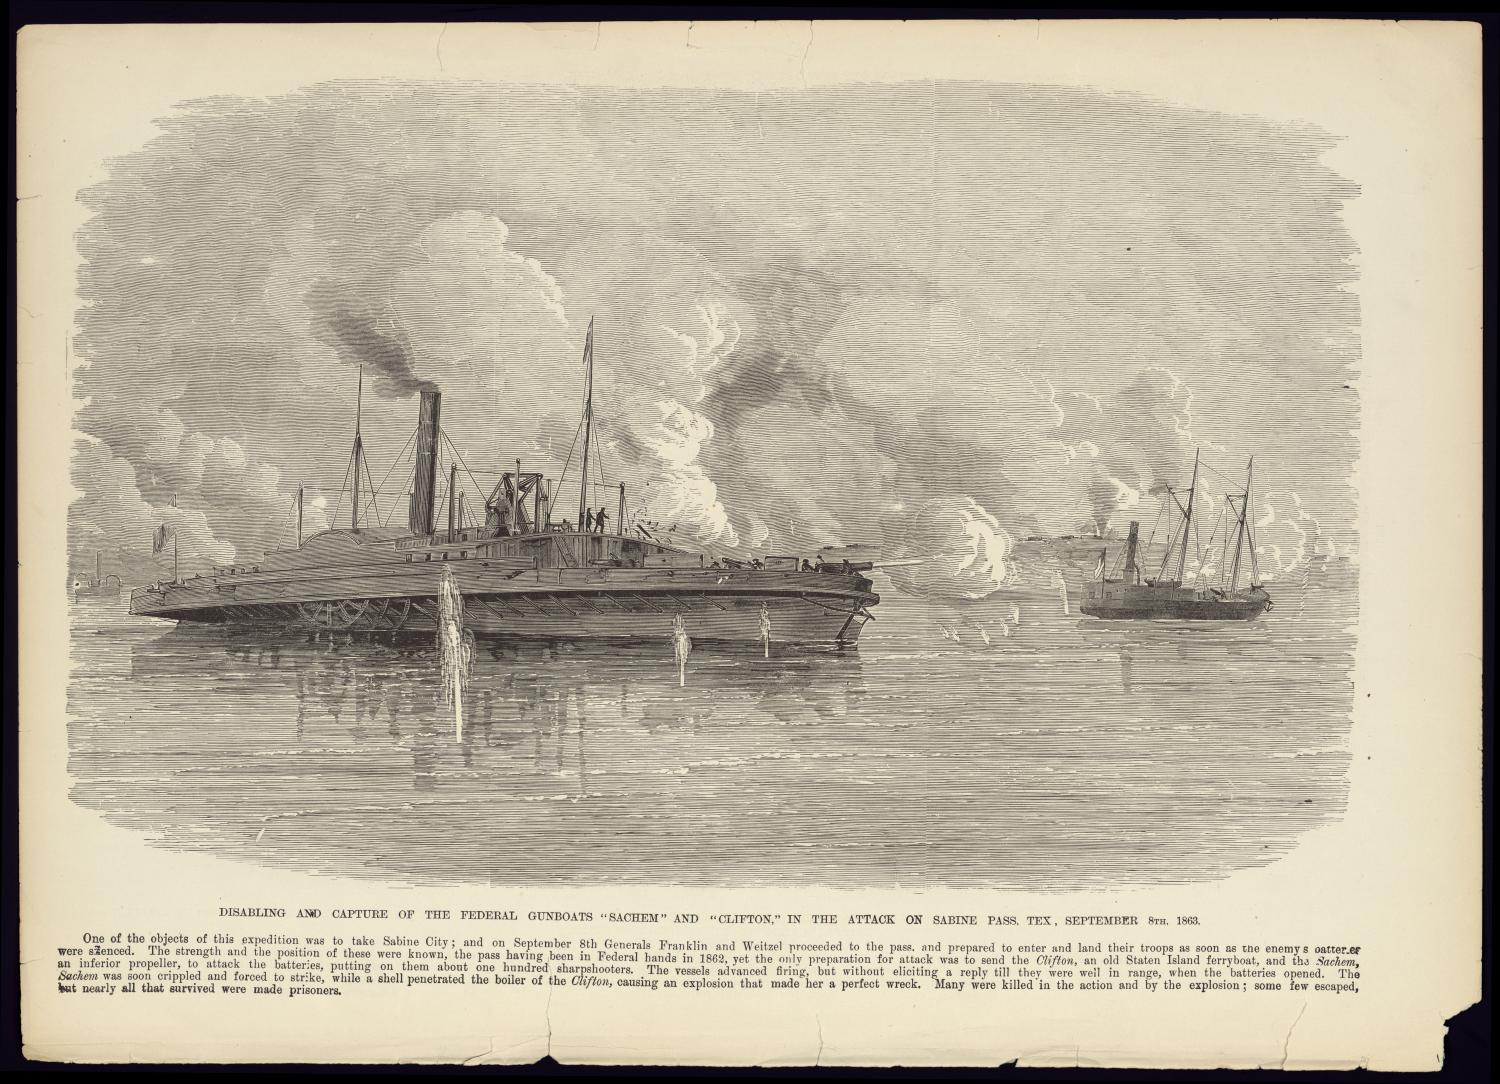 """Disabling and Capture of the Federal Gunboats 'Sachem' and 'Clifton' in the Attack on Sabine Pass, Texas, September 8th, 1863""                                                                                                      [Sequence #]: 1 of 1"